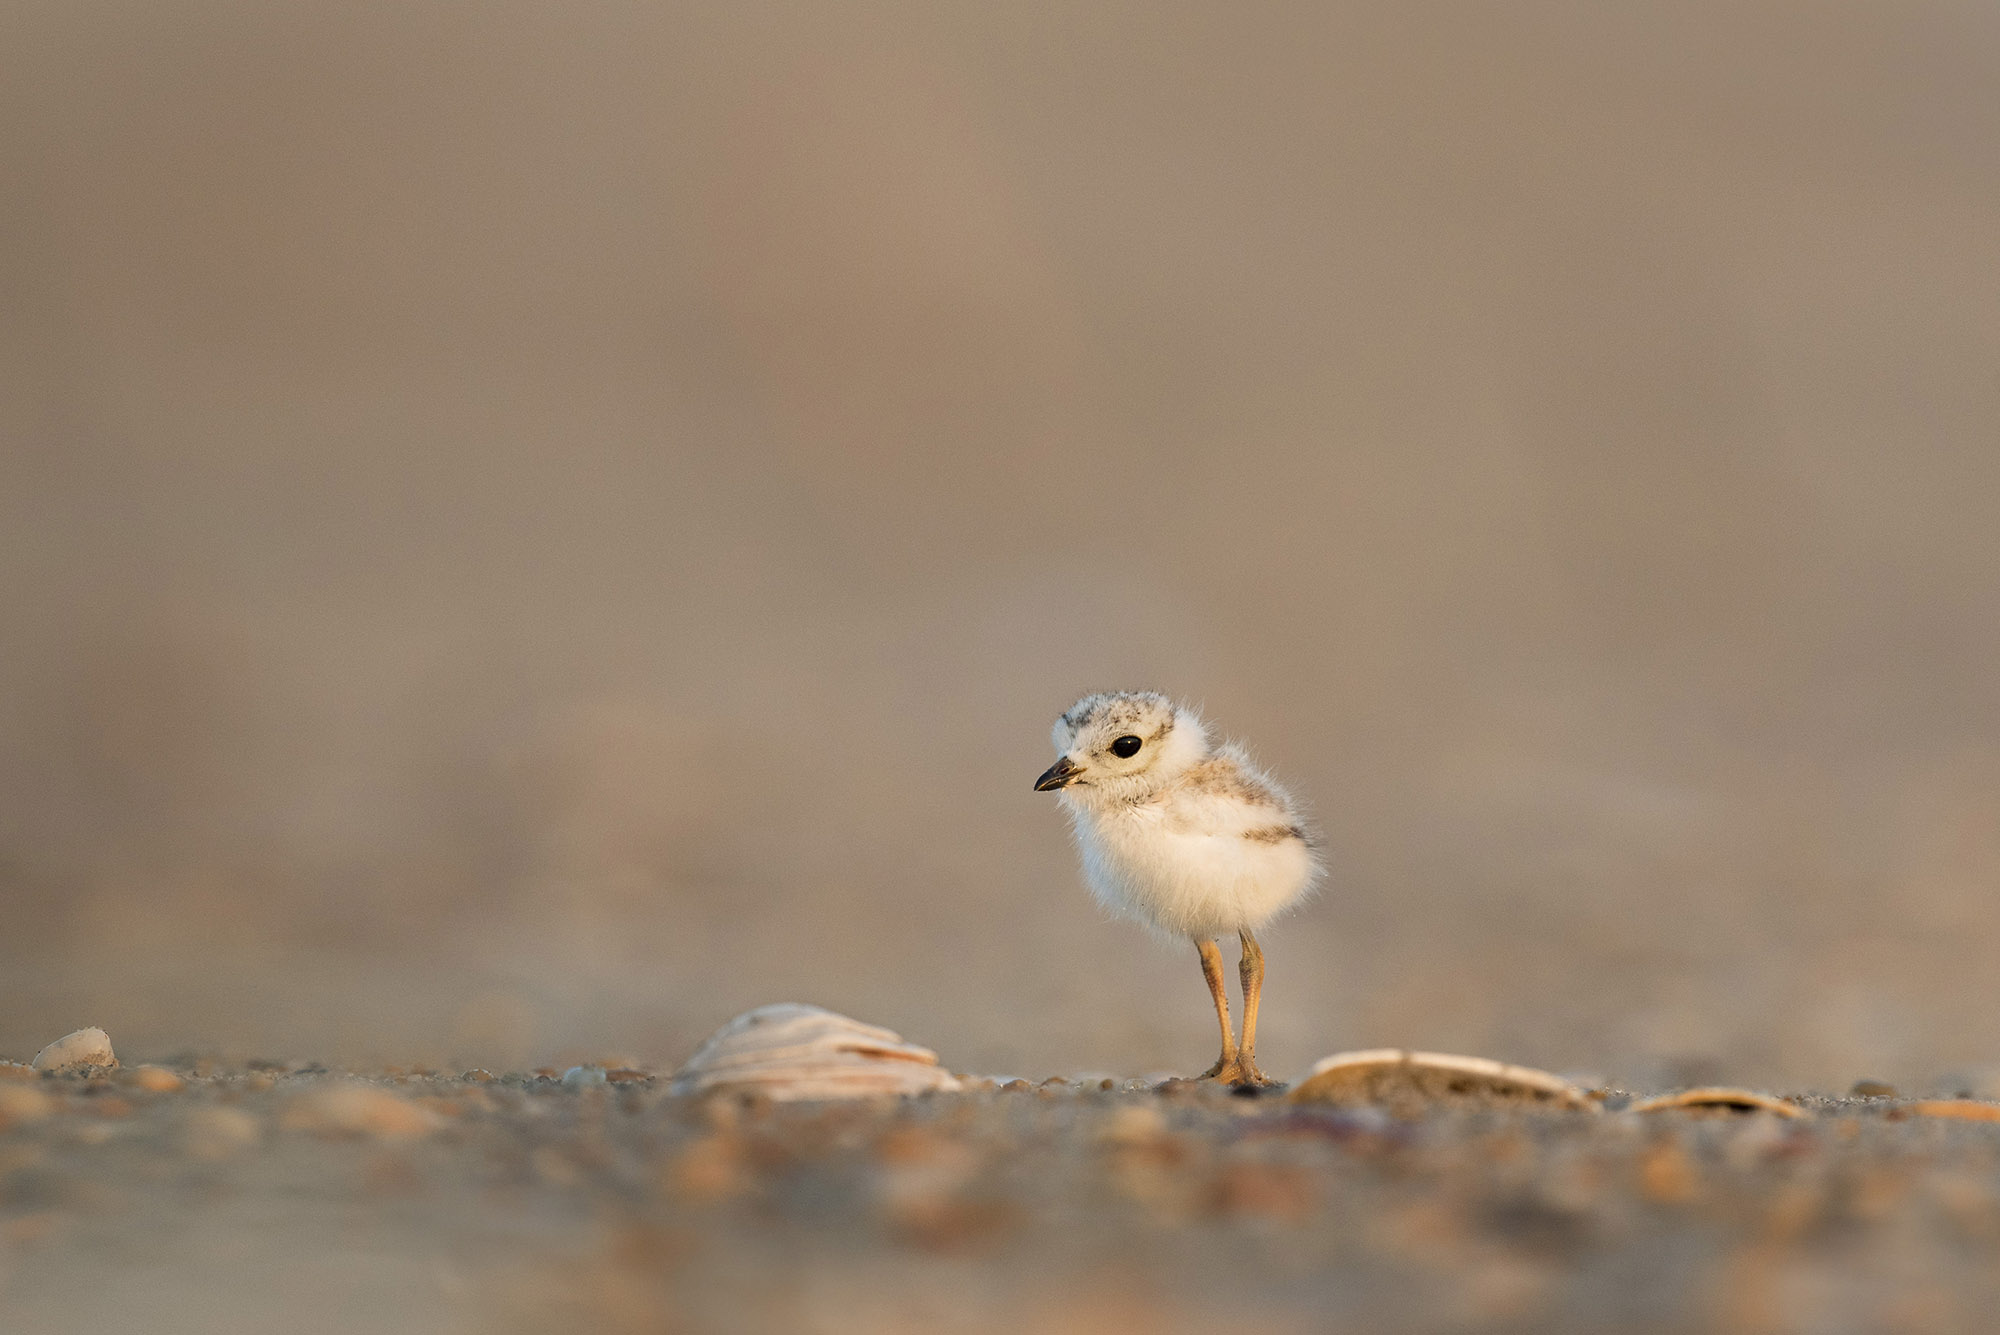 My first time ever seeing and photographing a Piping Plover chick was an amazing experience. My friend and I got very lucky with our timing and the tiny chicks were running all over the beach. We must have seen at least a dozen of these tiny little speed demons. It almost made me laugh every time they were on the move with how fast they ran. Thankfully they would stop once in a while which would allow a photo. The tiny birds were also very cooperative as far as getting close to the camera. Many times I would pick a spot to lay down and they would actually walk right towards me. This photo was earlier in the morning just after the rising sun had cleared a bank of clouds on the horizon, the warm soft light was perfect for this tiny chick. Taken at Sandy Hook in Highlands, New Jersey.